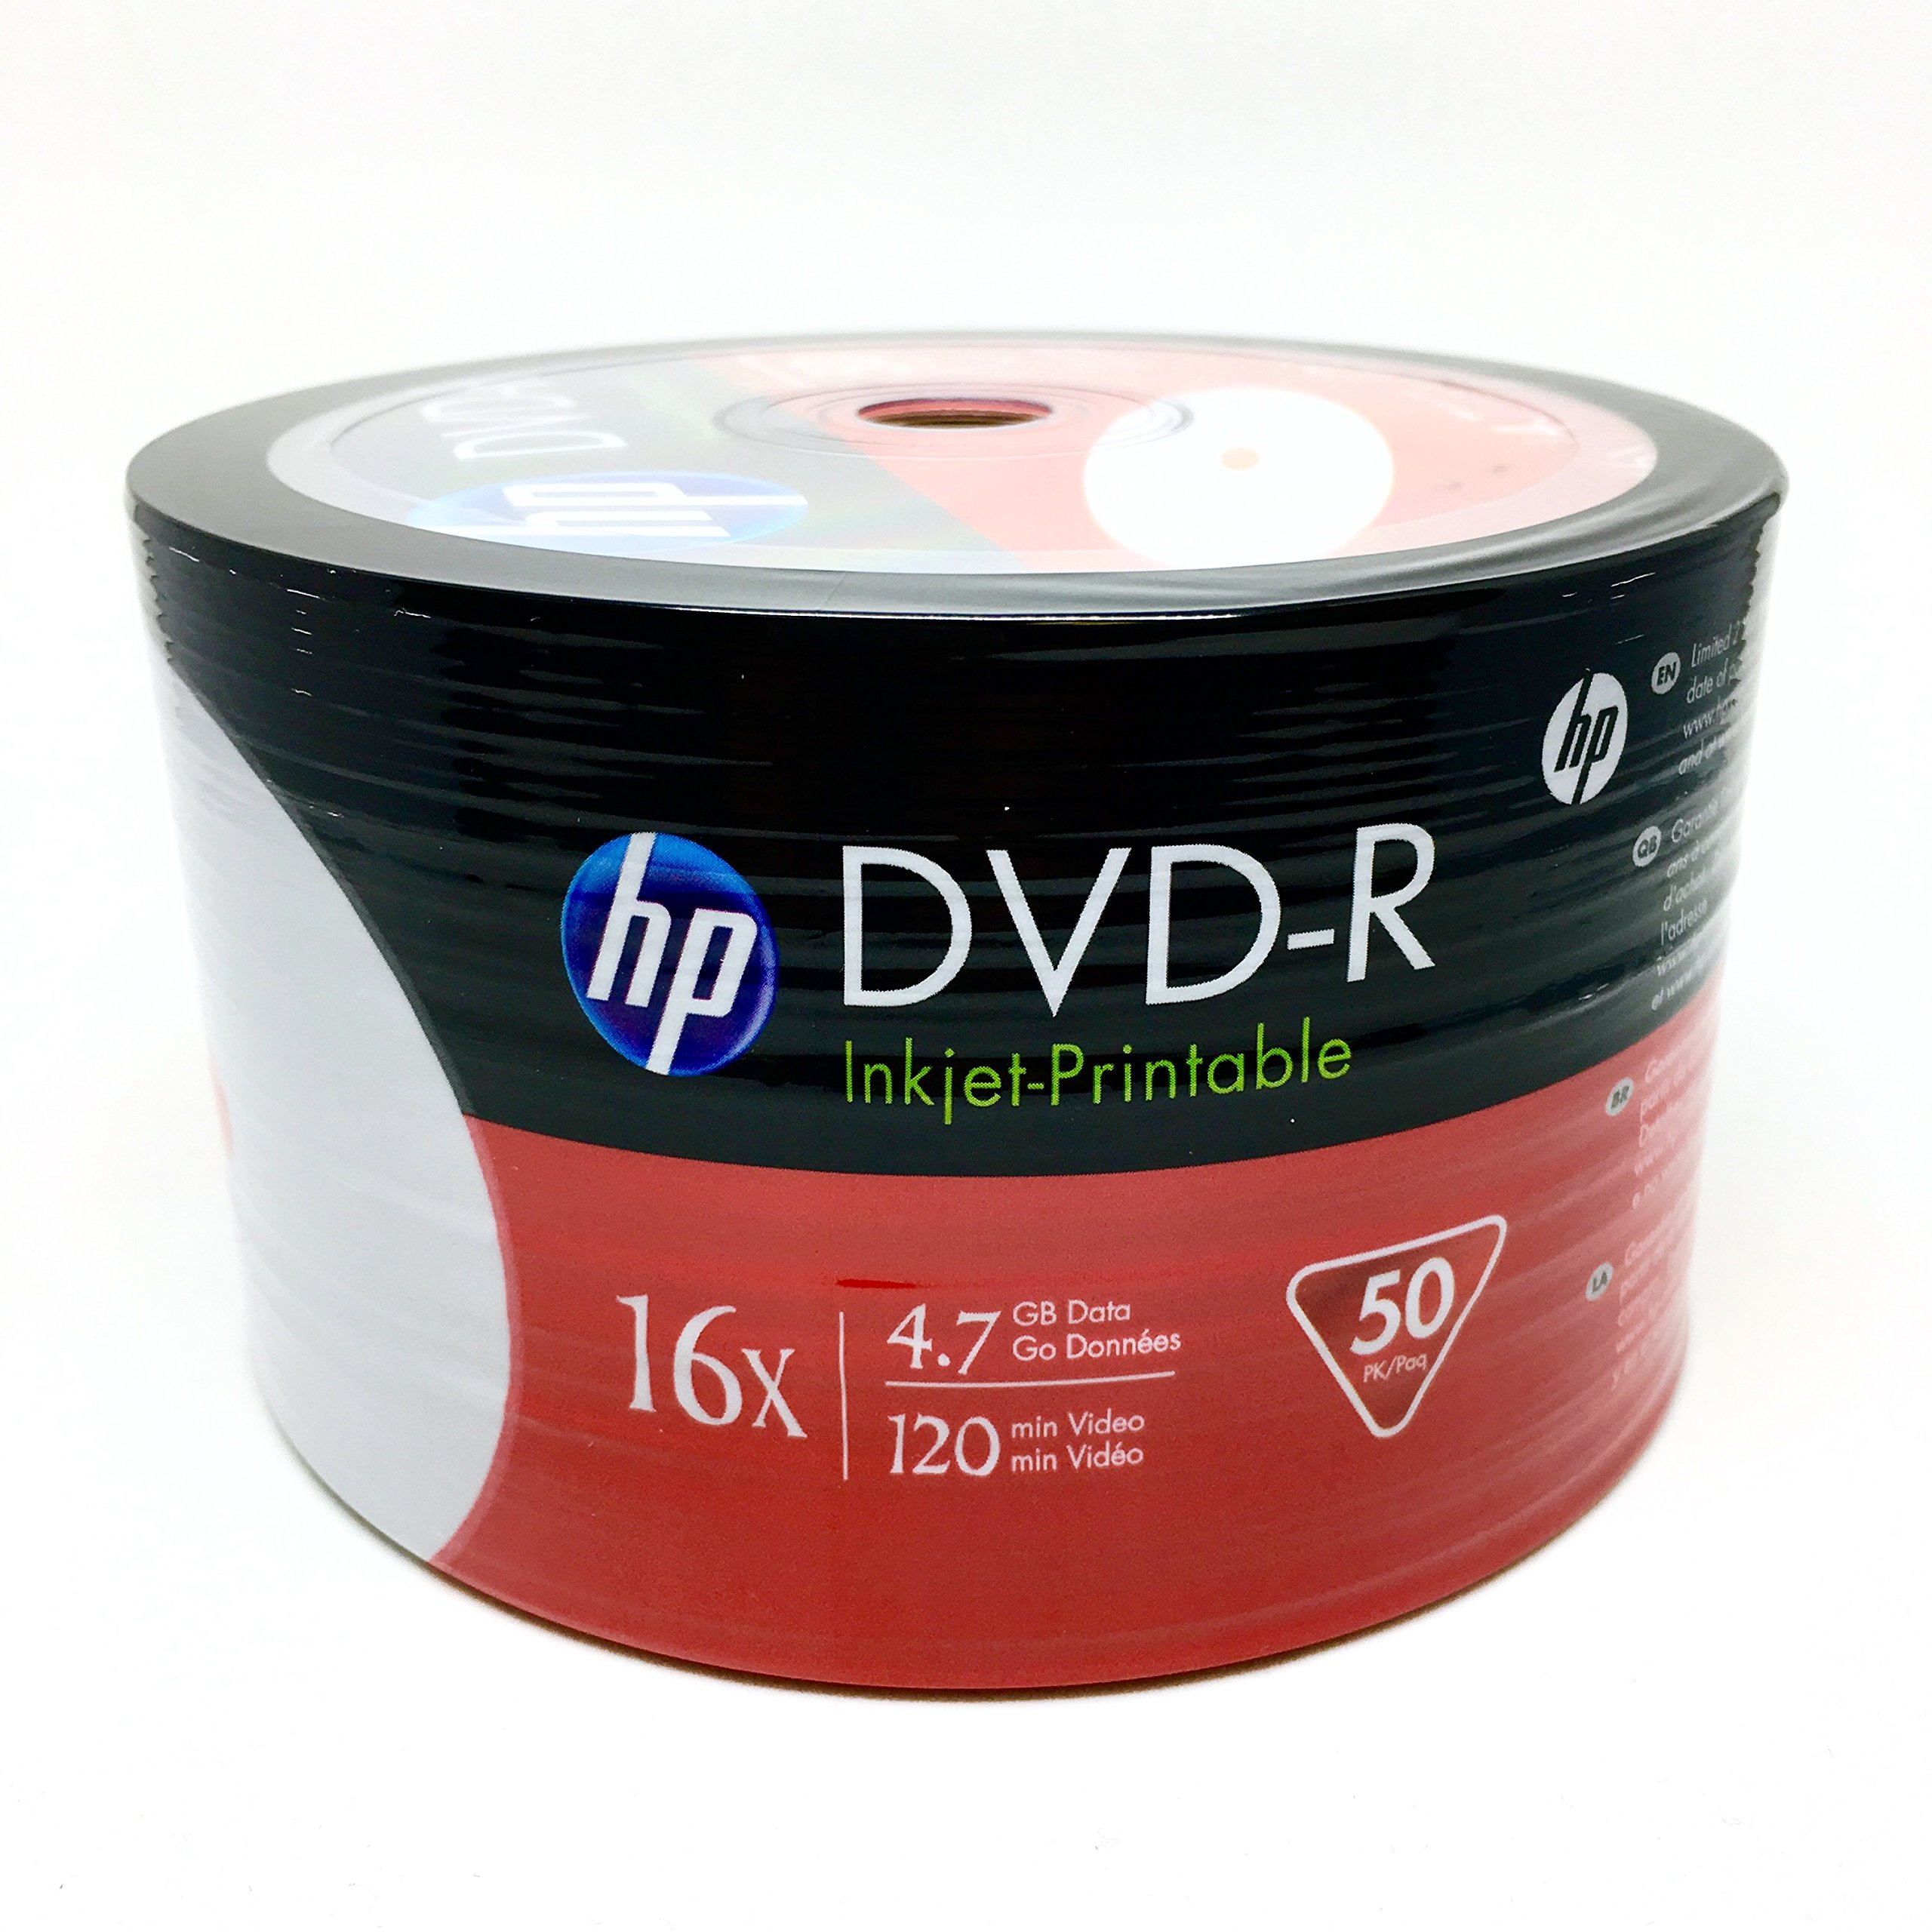 photograph about Hp Printable identify HP DVD-R47 16X White Hub Inkjet Printable Show up 50computer systems The greater part